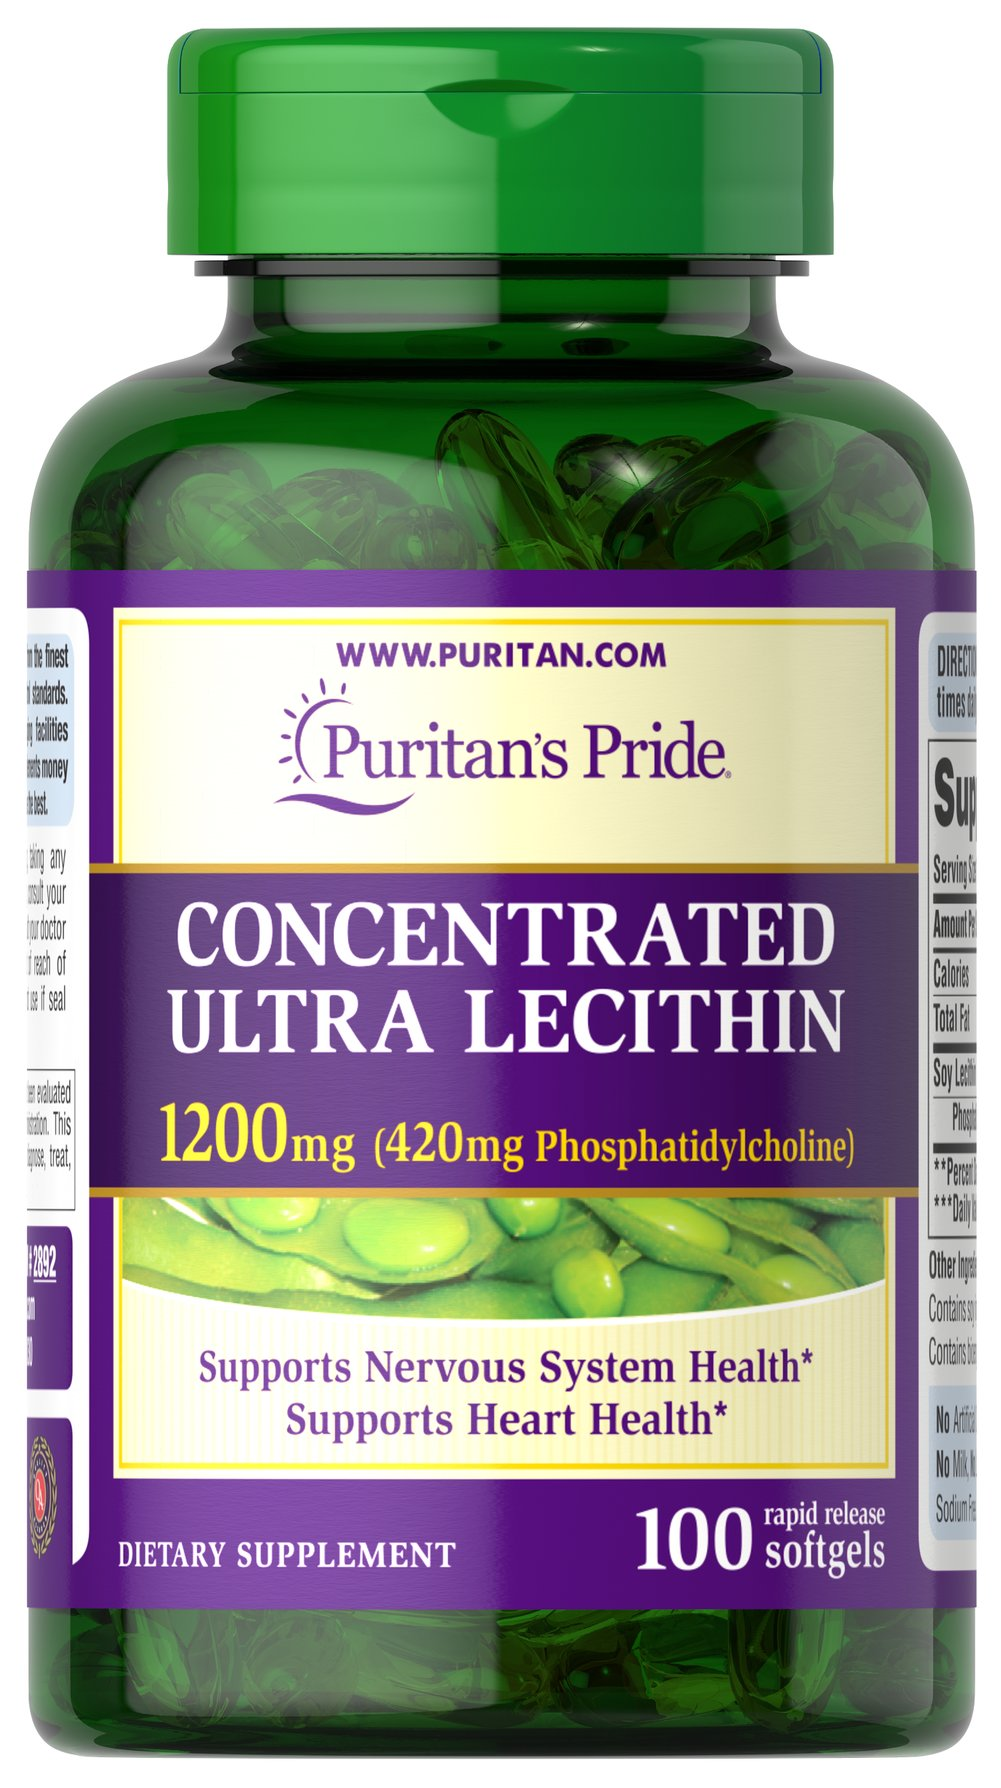 Concentrated Ultra Lecithin 1200 mg <p>Promotes healthy brain function**</p><p>Assists with cardiovascular health**</p><p>Contributes to a healthy nervous system**</p><p>Our highest potency Lecithin product to date++</p><p>One softgel provides you with a whopping 420 mg of naturally sourced Phosphatidylcholine, a vital part of the B Vitamin Complex.**</p> 100 Softgels 1200 mg $14.99